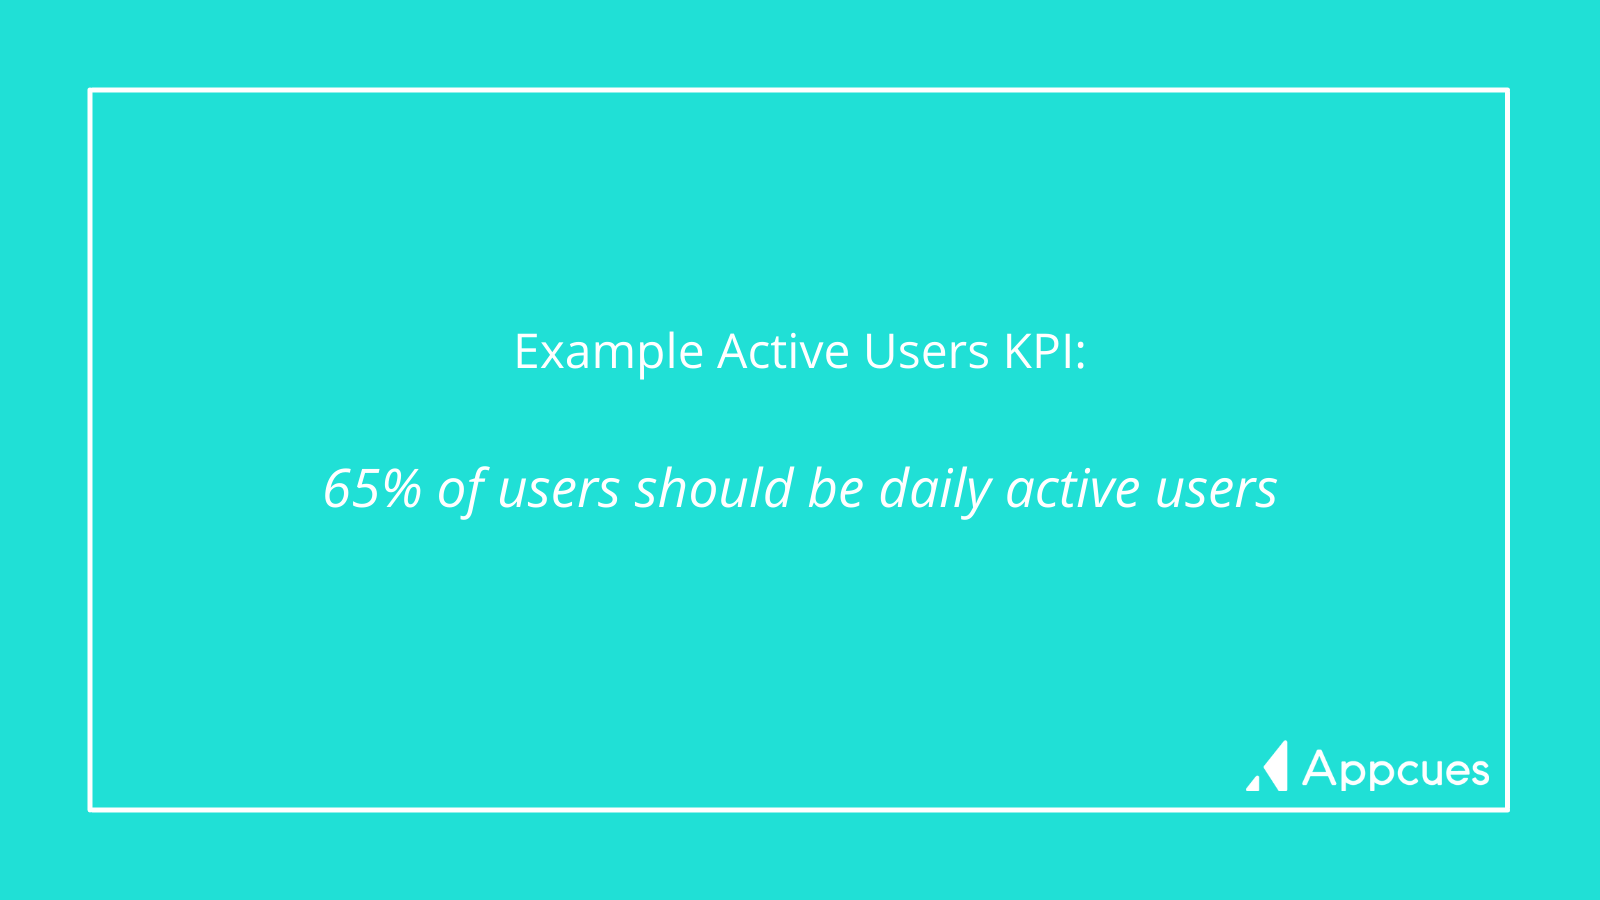 Example Active Users KPI